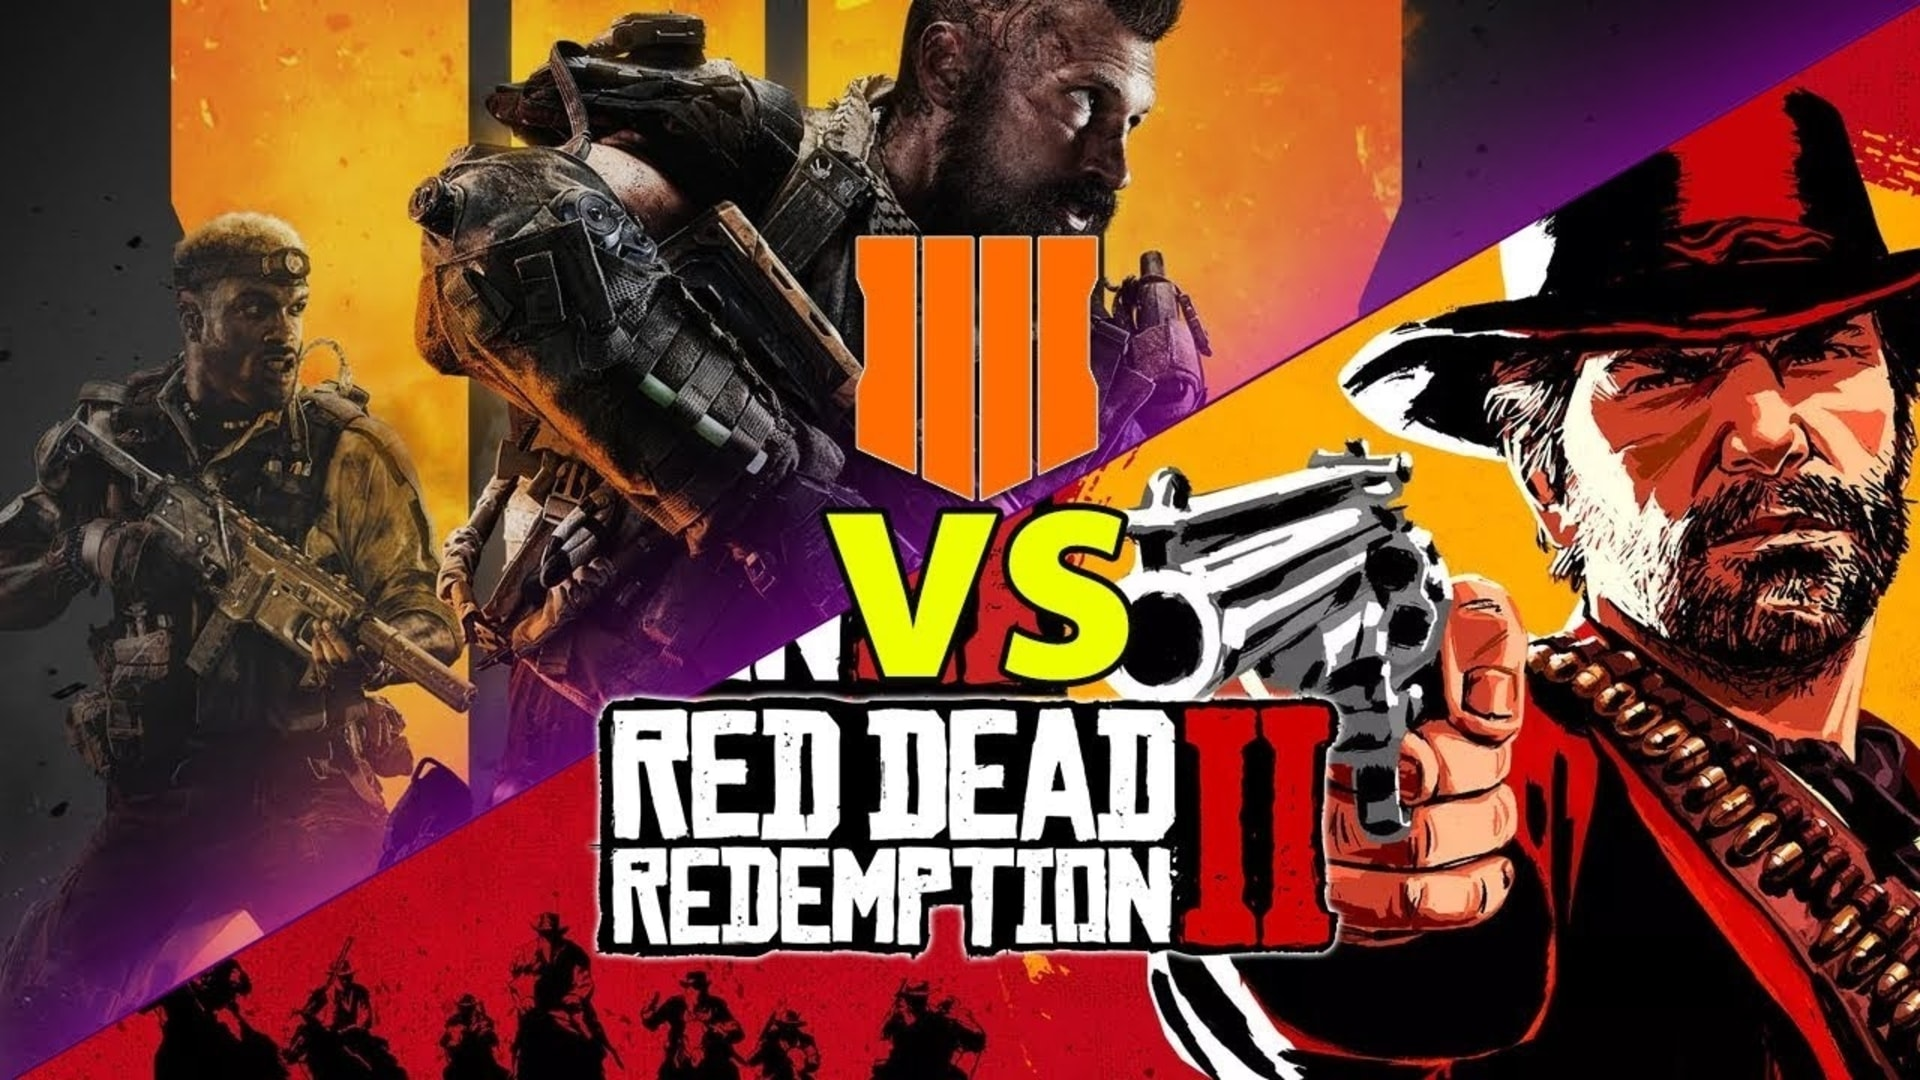 Red Dead Redemtion 2 vs Black Ops 4 PS Store sales